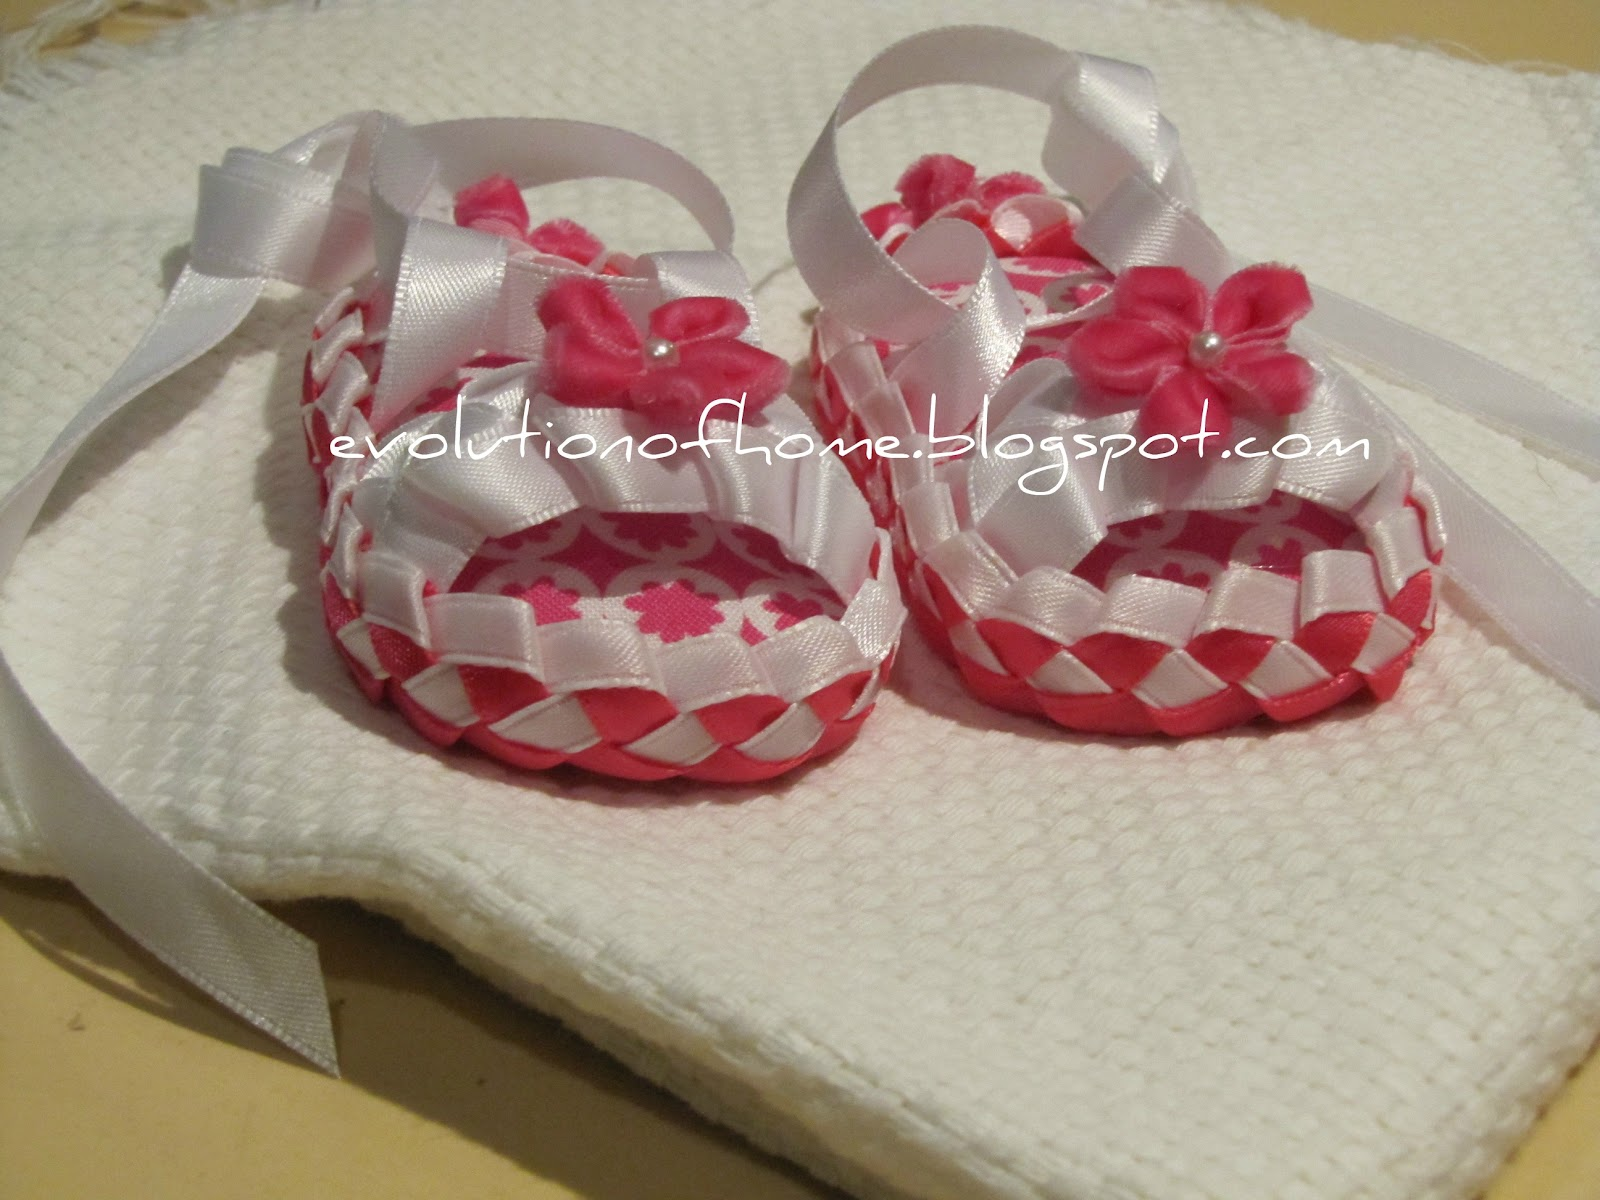 The Evolution Of Home Make Your Own Newborn Baby Shoes